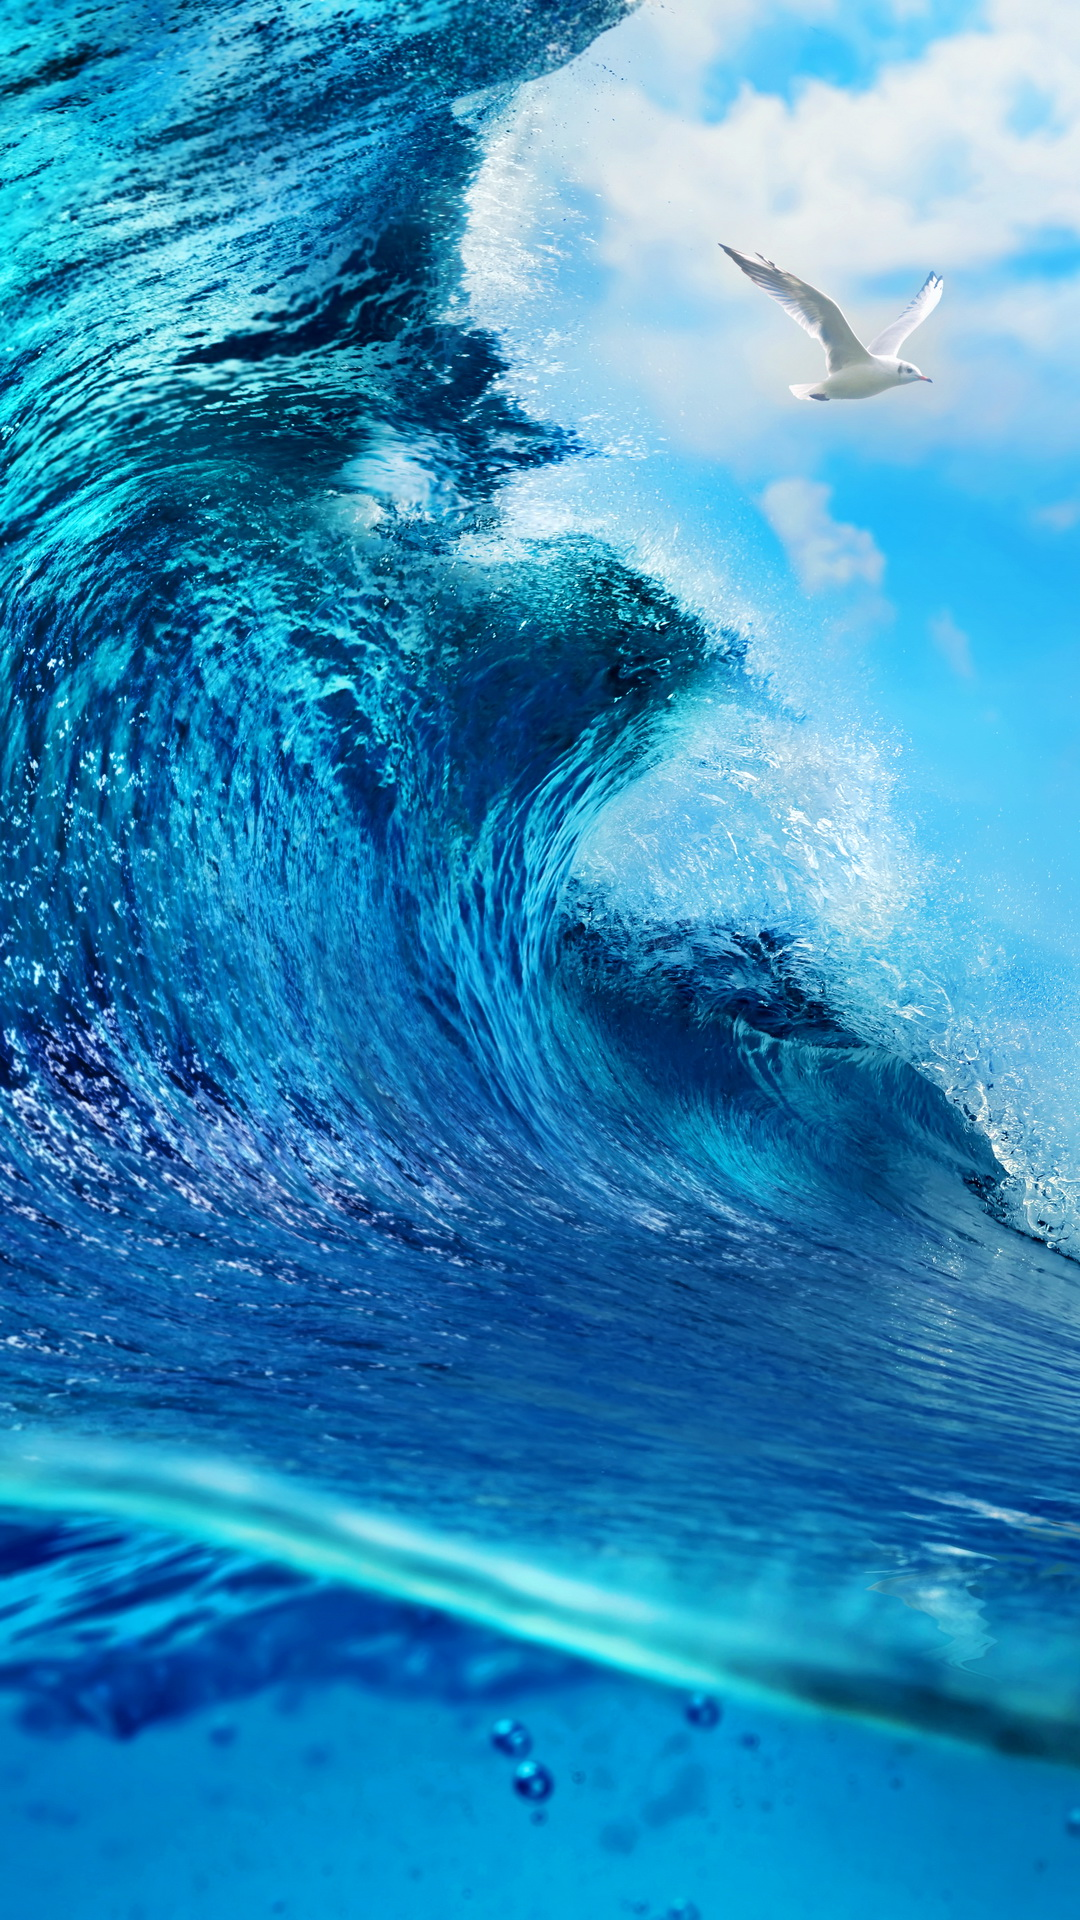 Cool Ocean Waves Wallpaper Ocean Waves Wallpaper Iphone